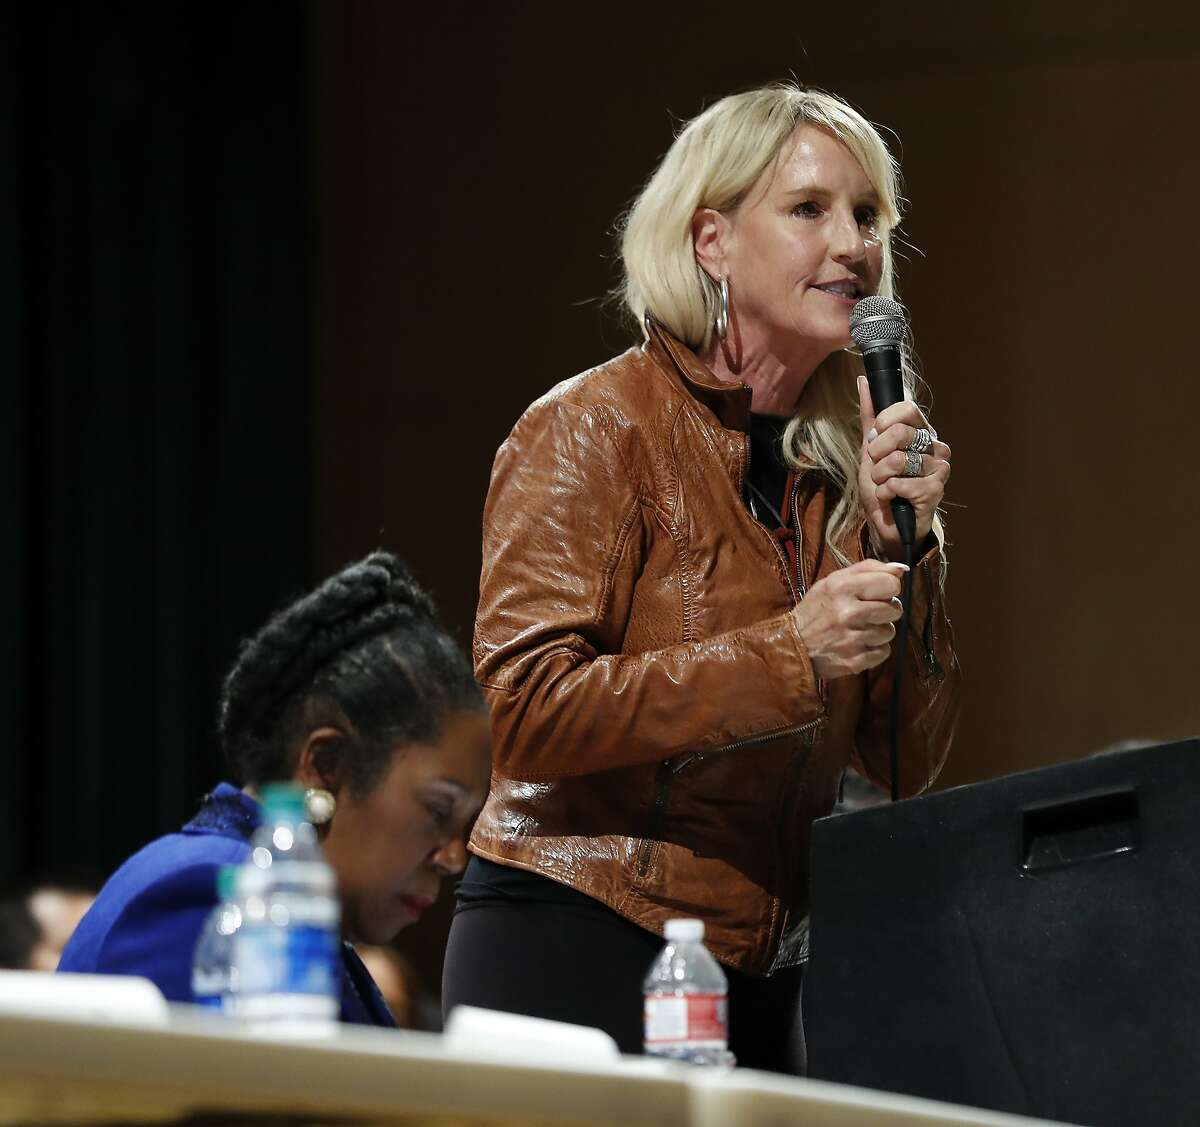 Environmental expert and advocate Erin Brockovich shared news out of San Antonio.